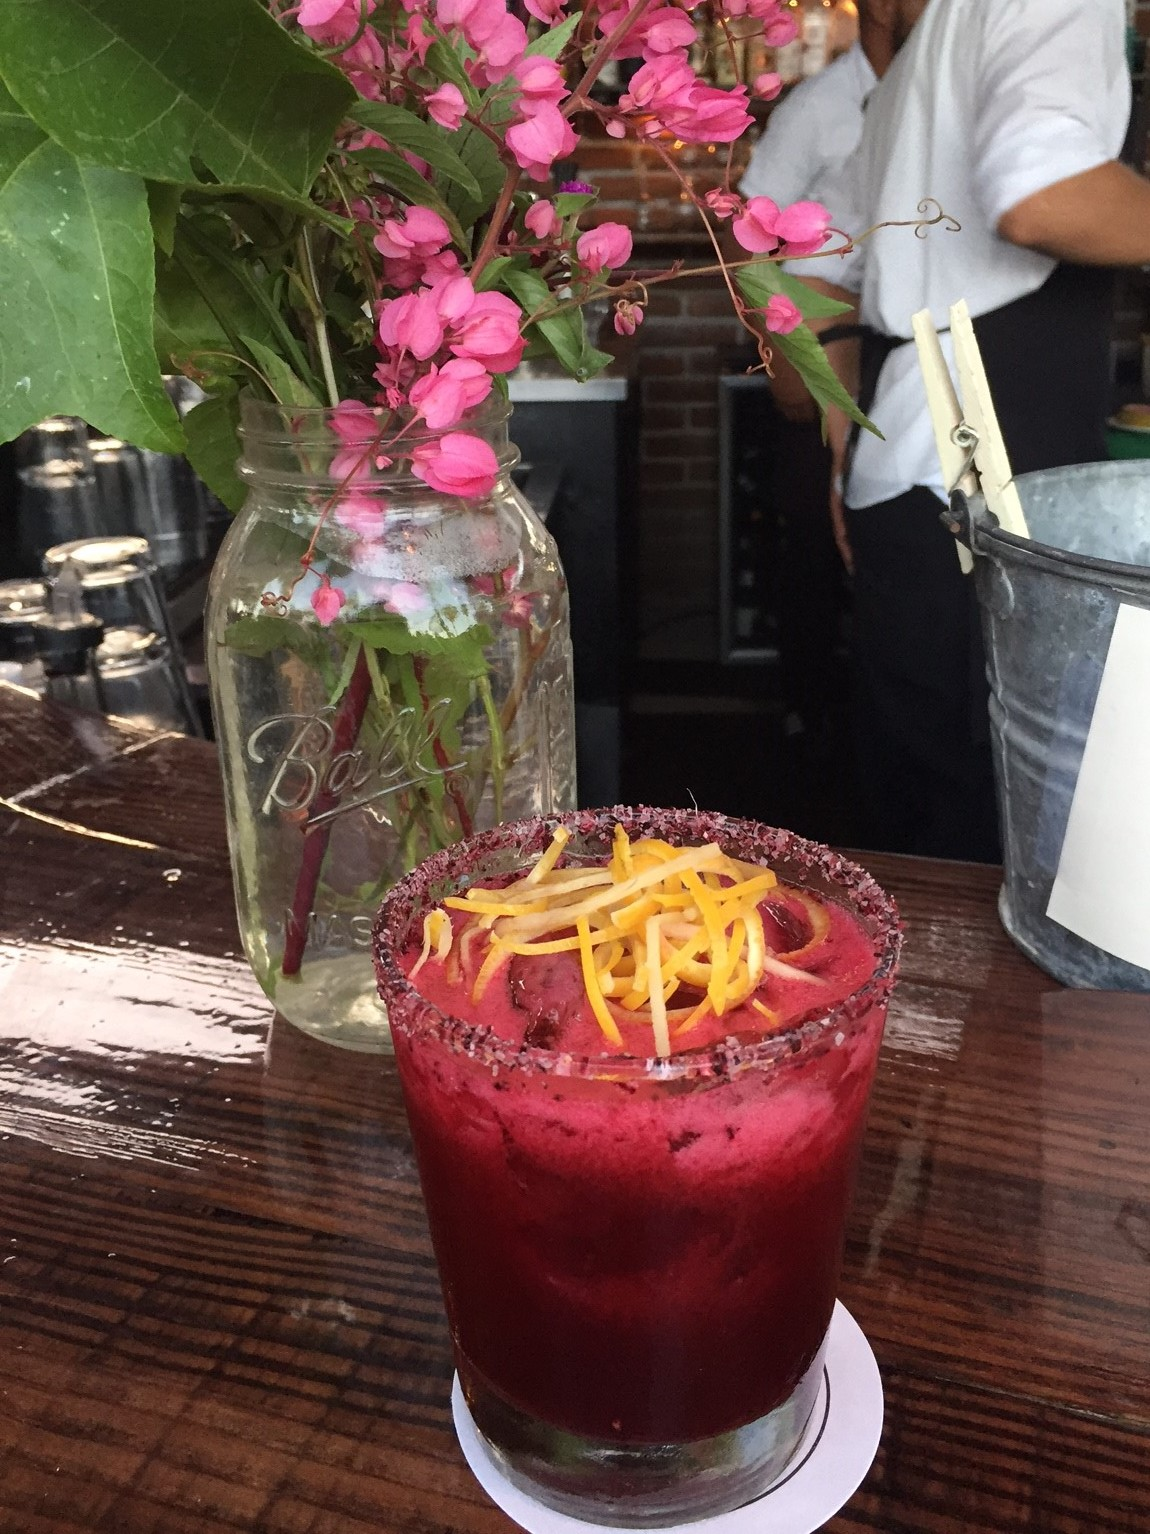 Couldn't resist these yummy hibiscus margaritas